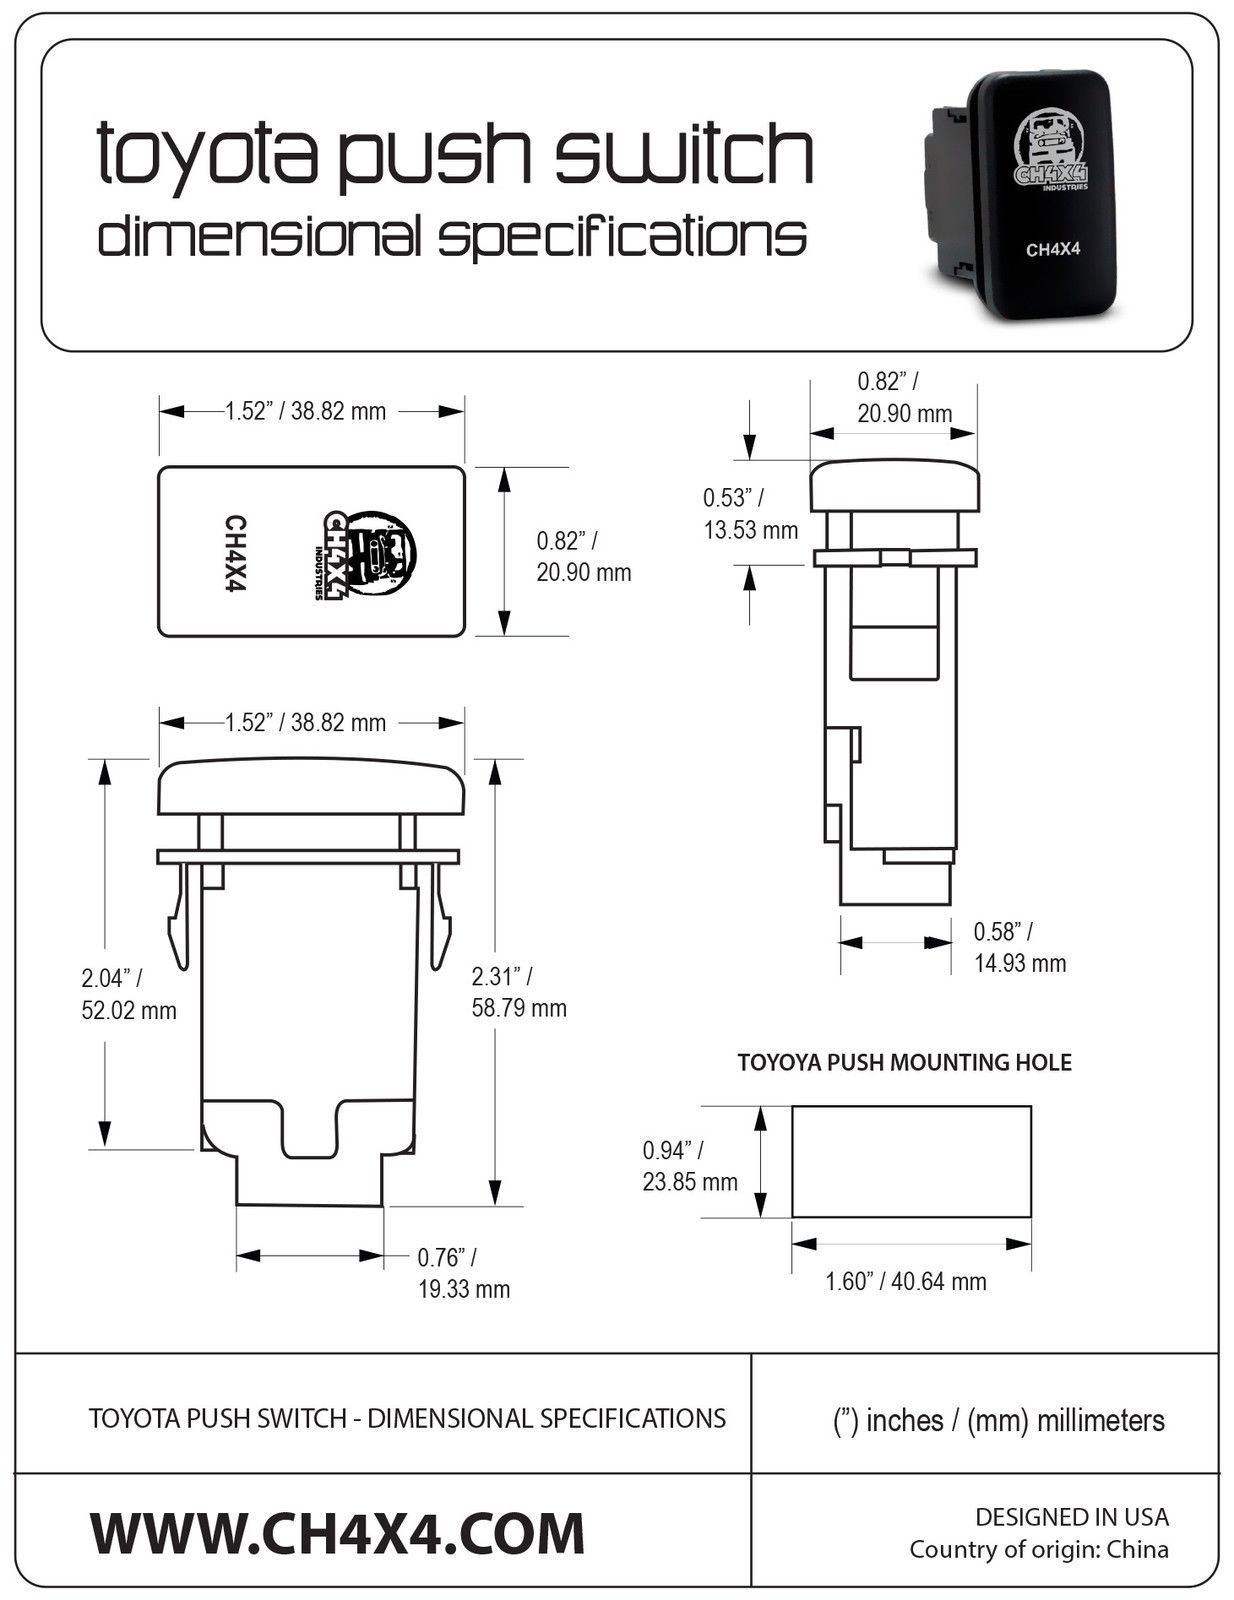 air bag schematic symbol Images Gallery